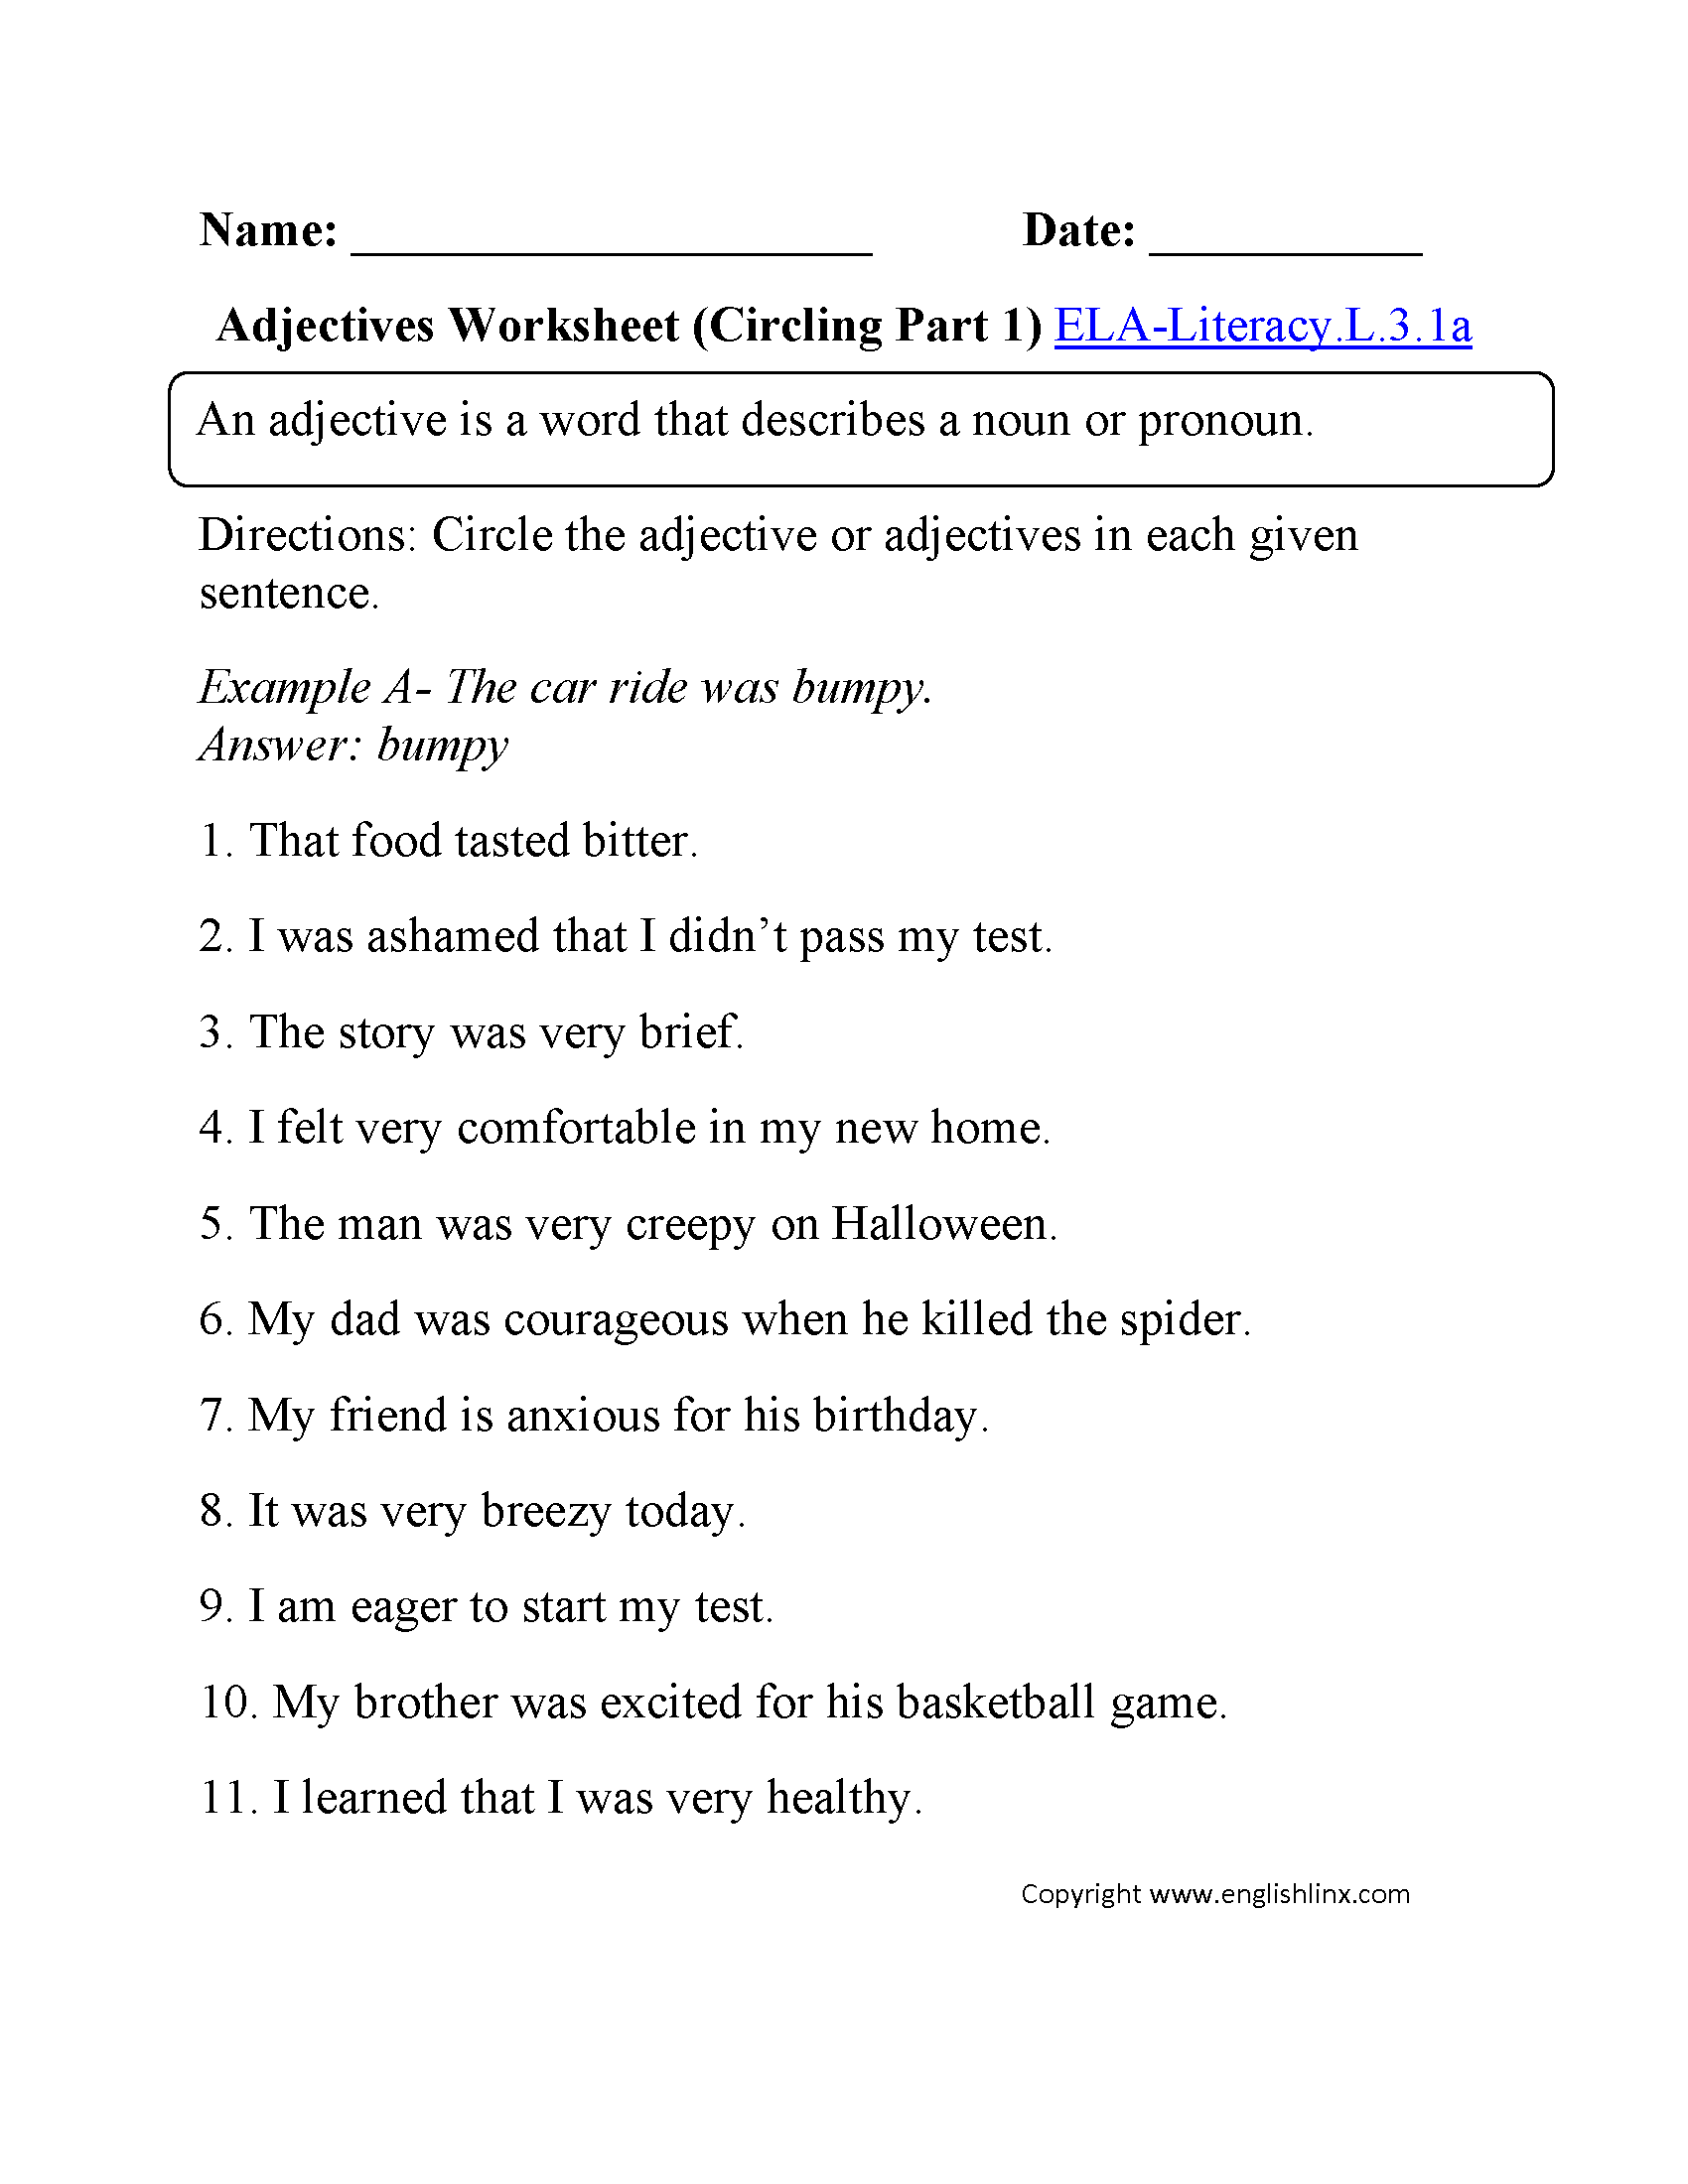 Adjectives Worksheet 1 Ela Literacy L 3 1a Language